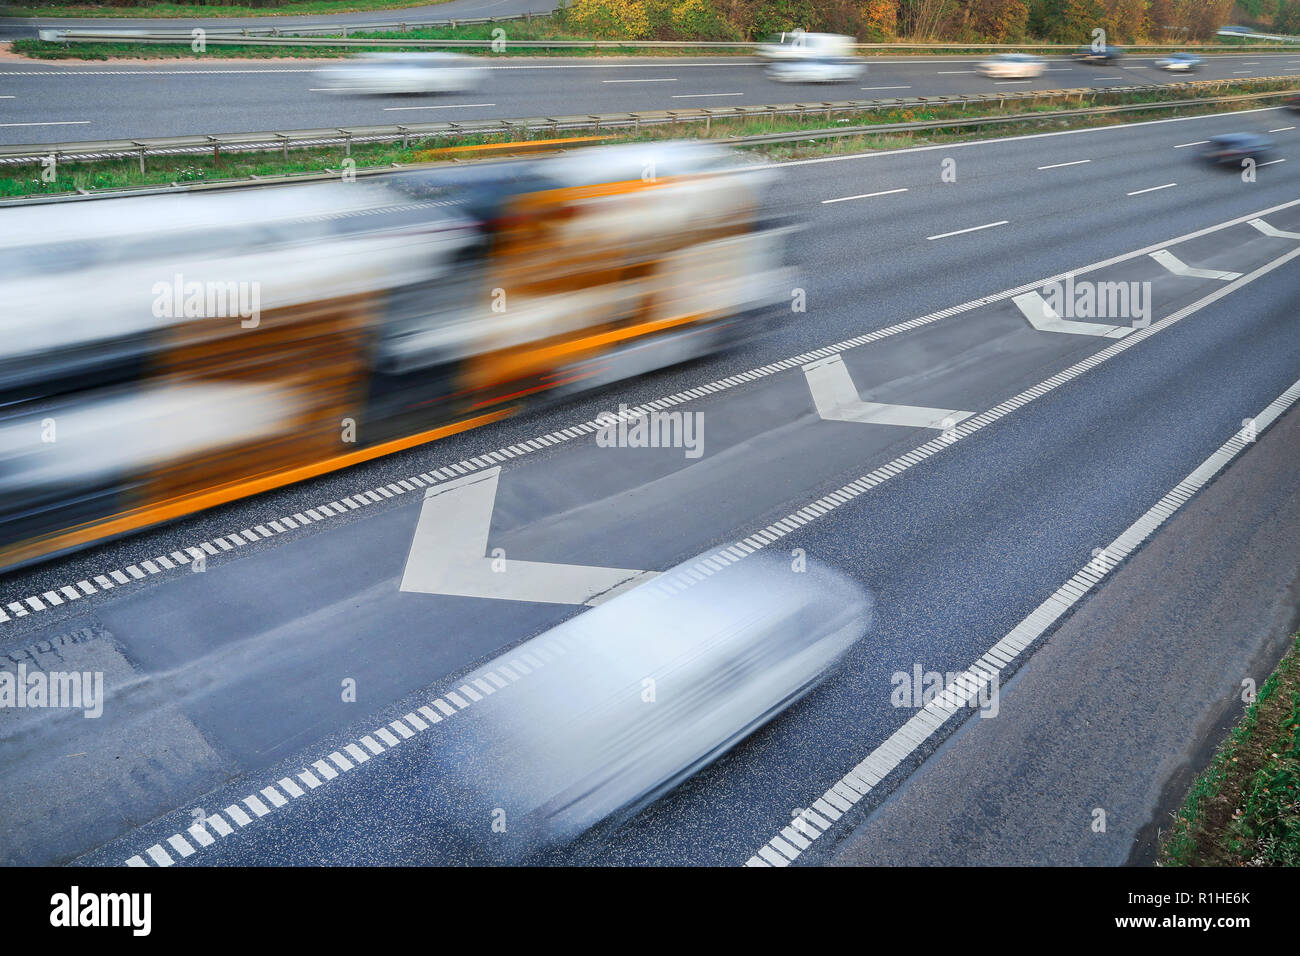 Fast moving vehicles at motion blur on the highway in Copenhagen Denmark - Stock Image